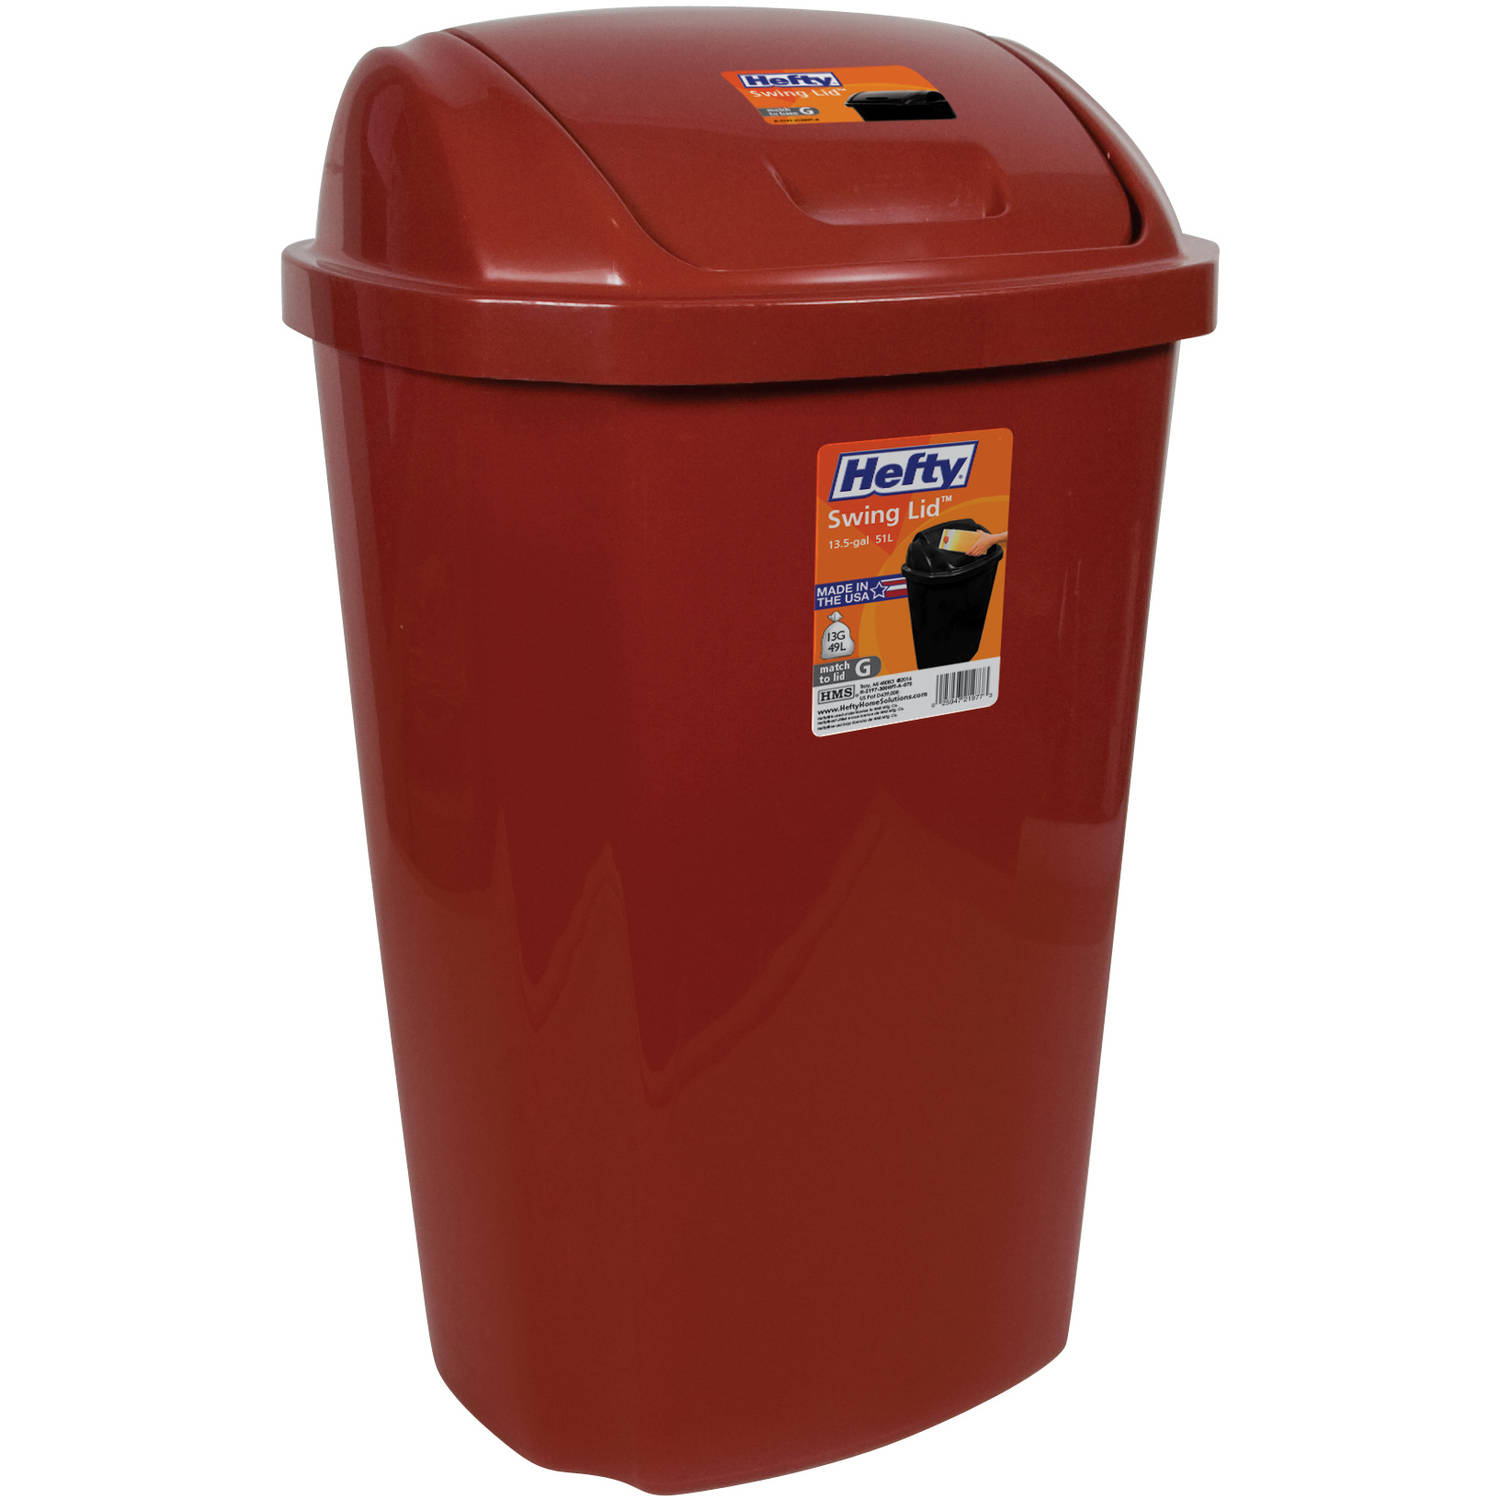 kitchen garbage cans hefty swing lid 13 5 gallon trash can colors 10038